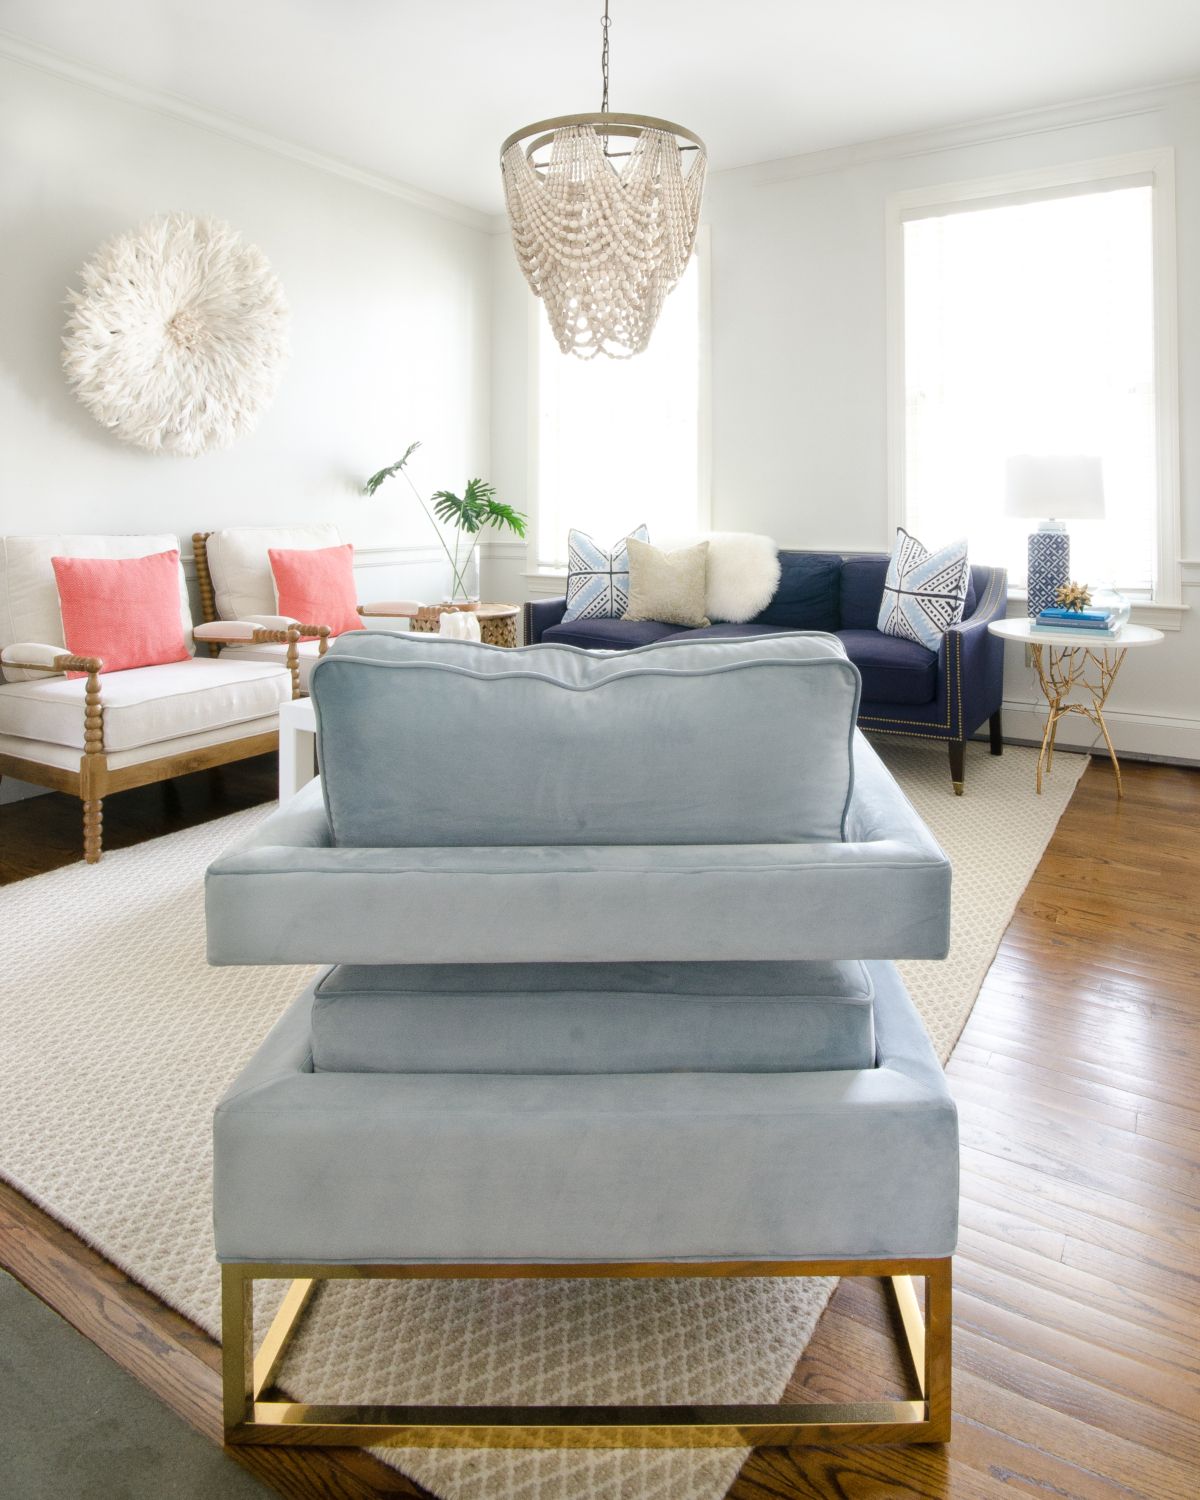 Classic living room design with a slight boho spin. A simple palette of blue, white, and coral keeps the room feeling soft and neutral with a just a bit of color. A draped beaded pendant light is the centerpiece of the room and a total showstopper.